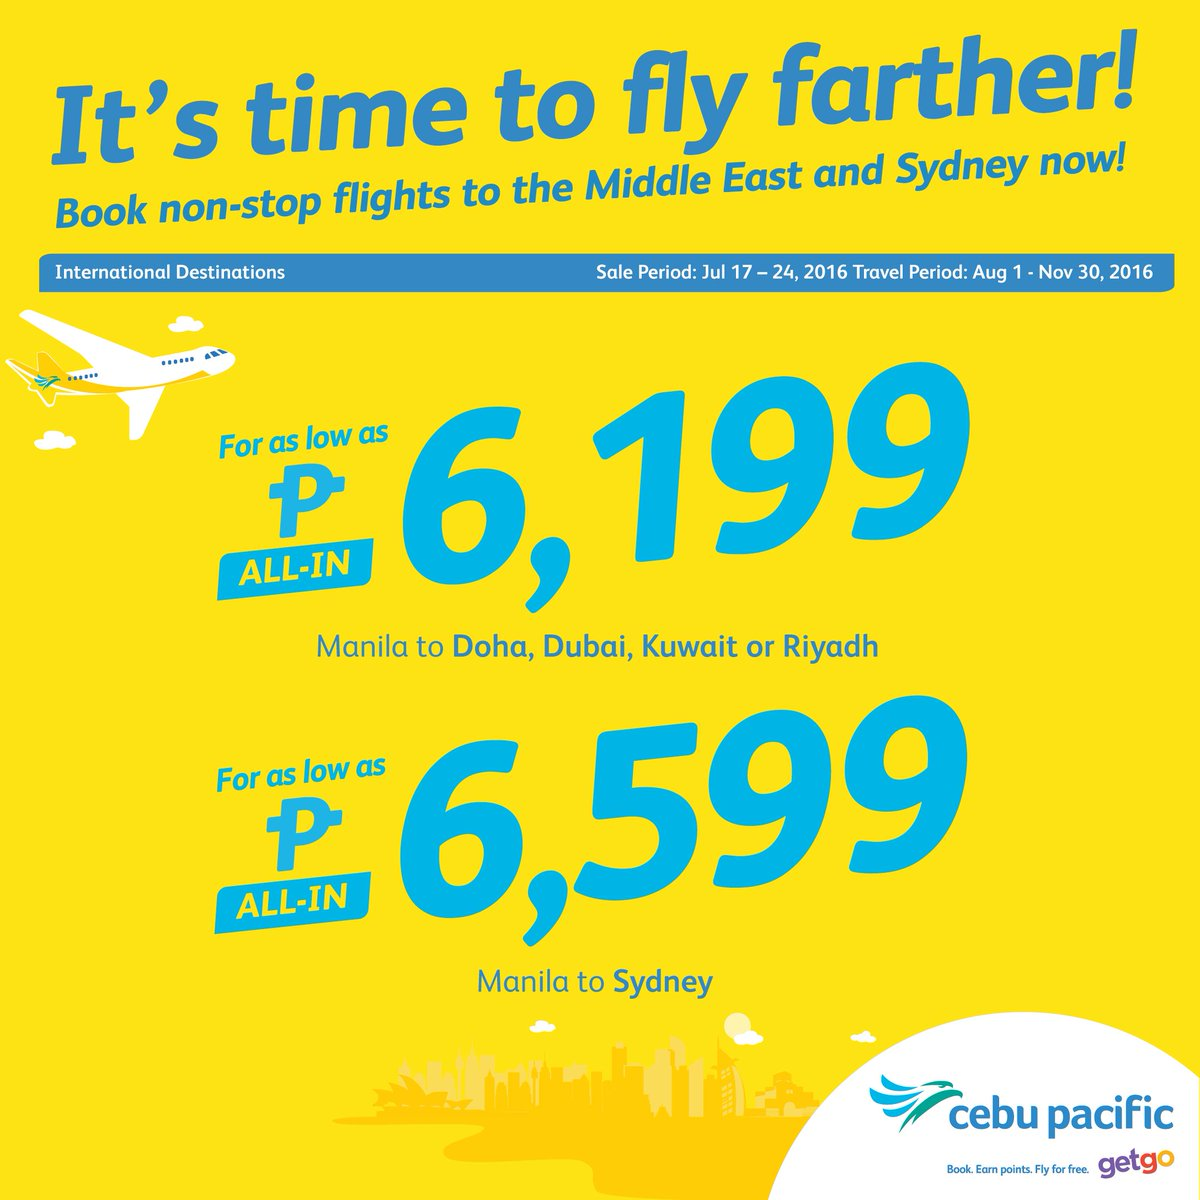 Fly farther to Australia and the Middle East with this CEBSeatSale! Book now until July 24.